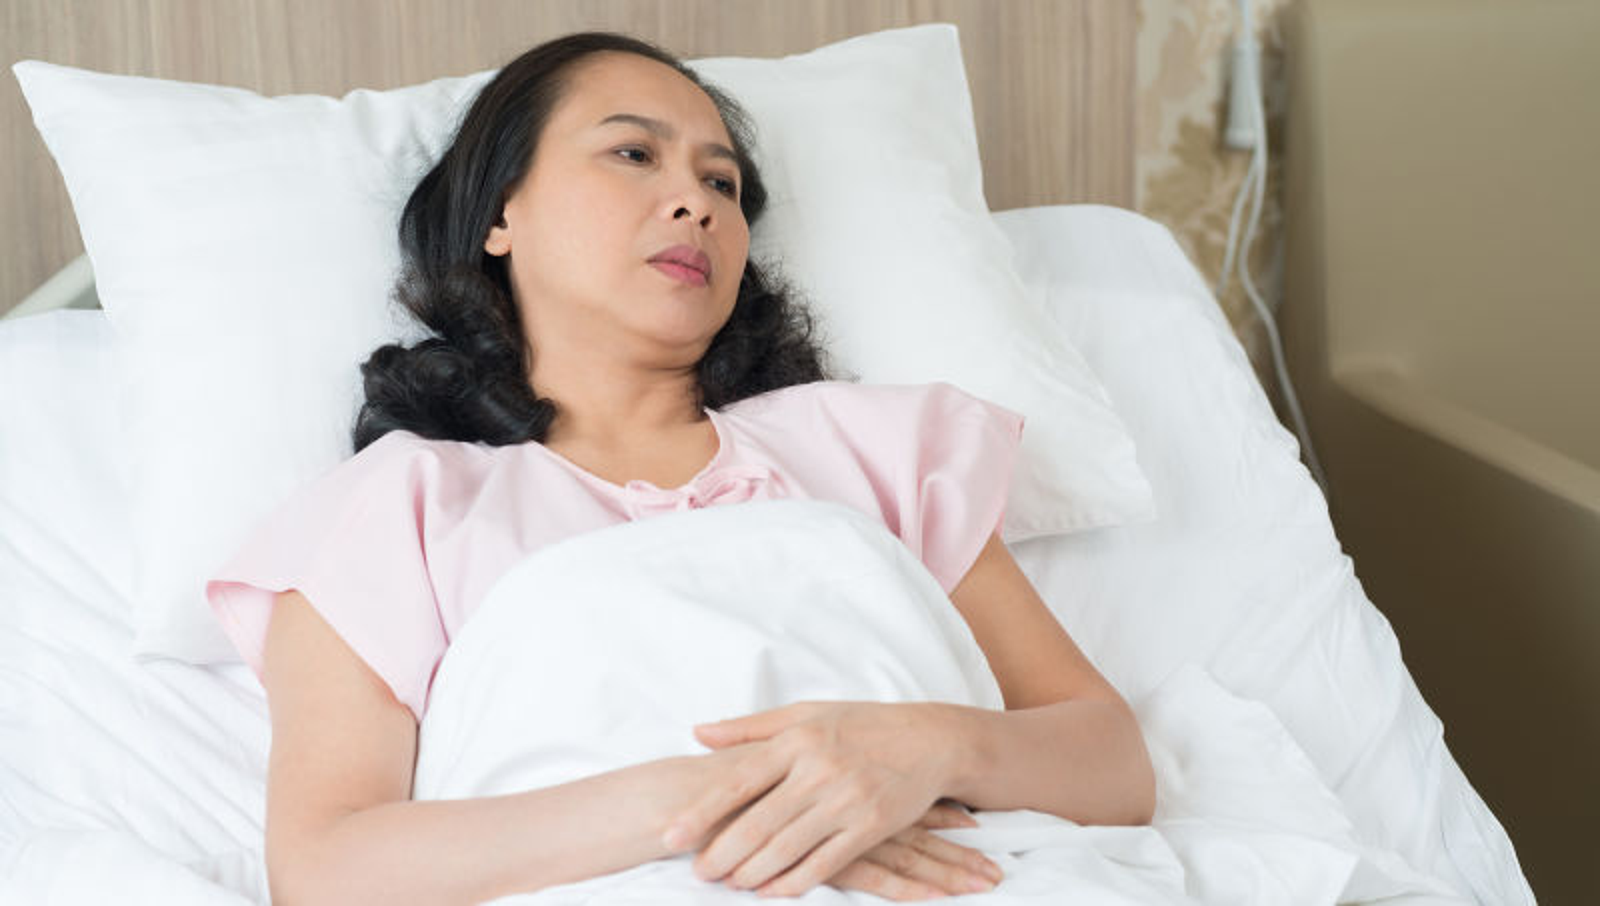 Hospital Guest Has Creepy Feeling Someone Might Have Died In Her Room